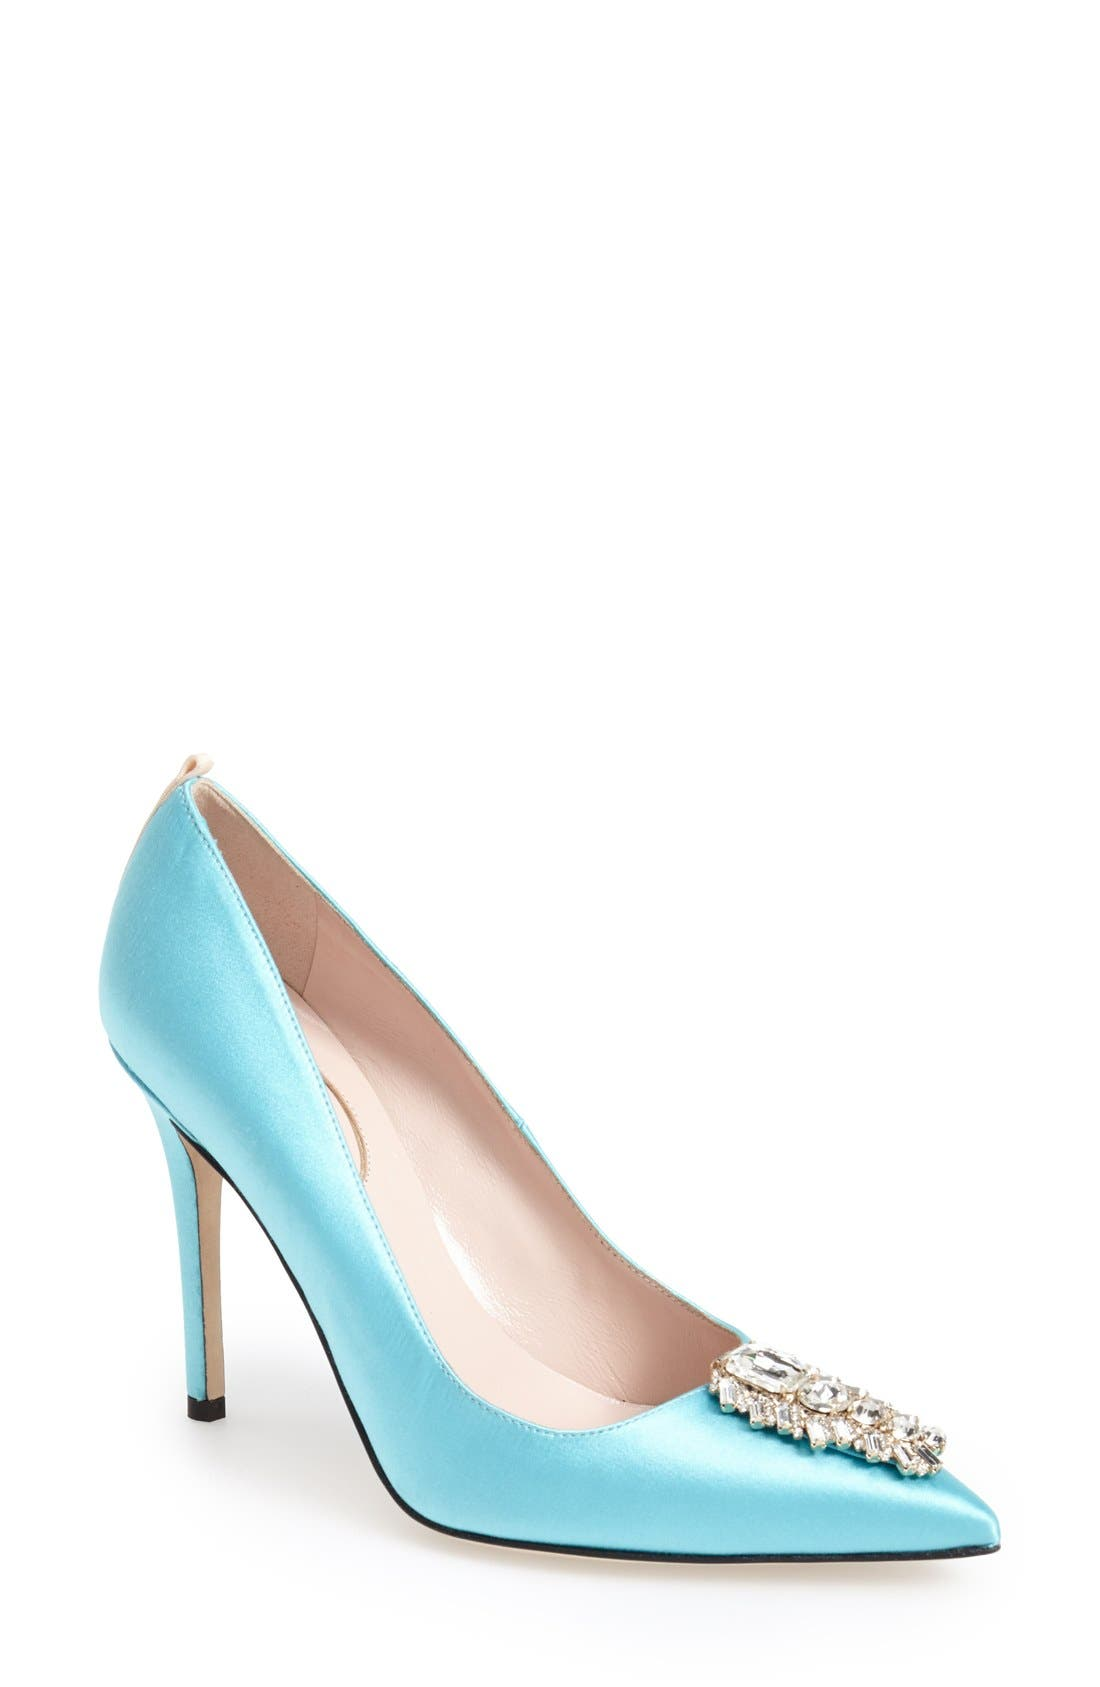 Main Image - SJP by Sarah Jessica Parker 'Tempest' Pointy Toe Pump (Women) (Nordstrom Exclusive)